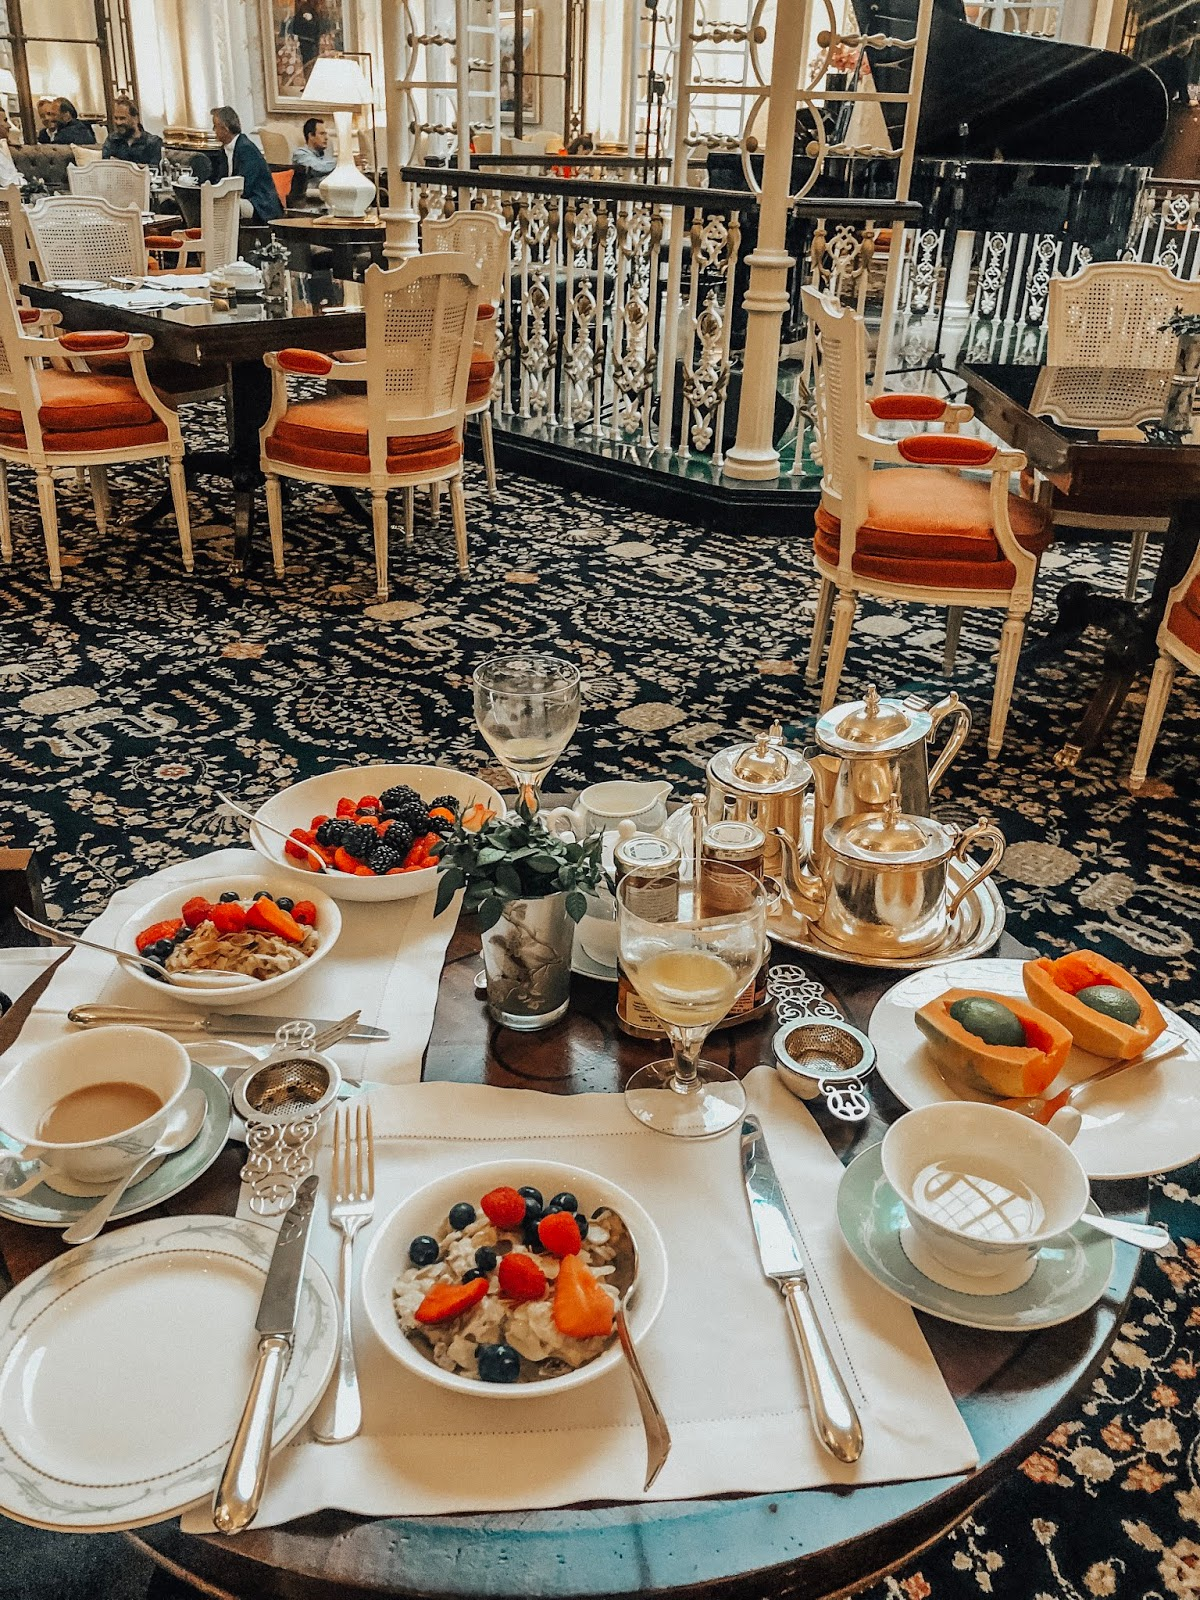 Breakfast at The Savoy in the Thames Foyer